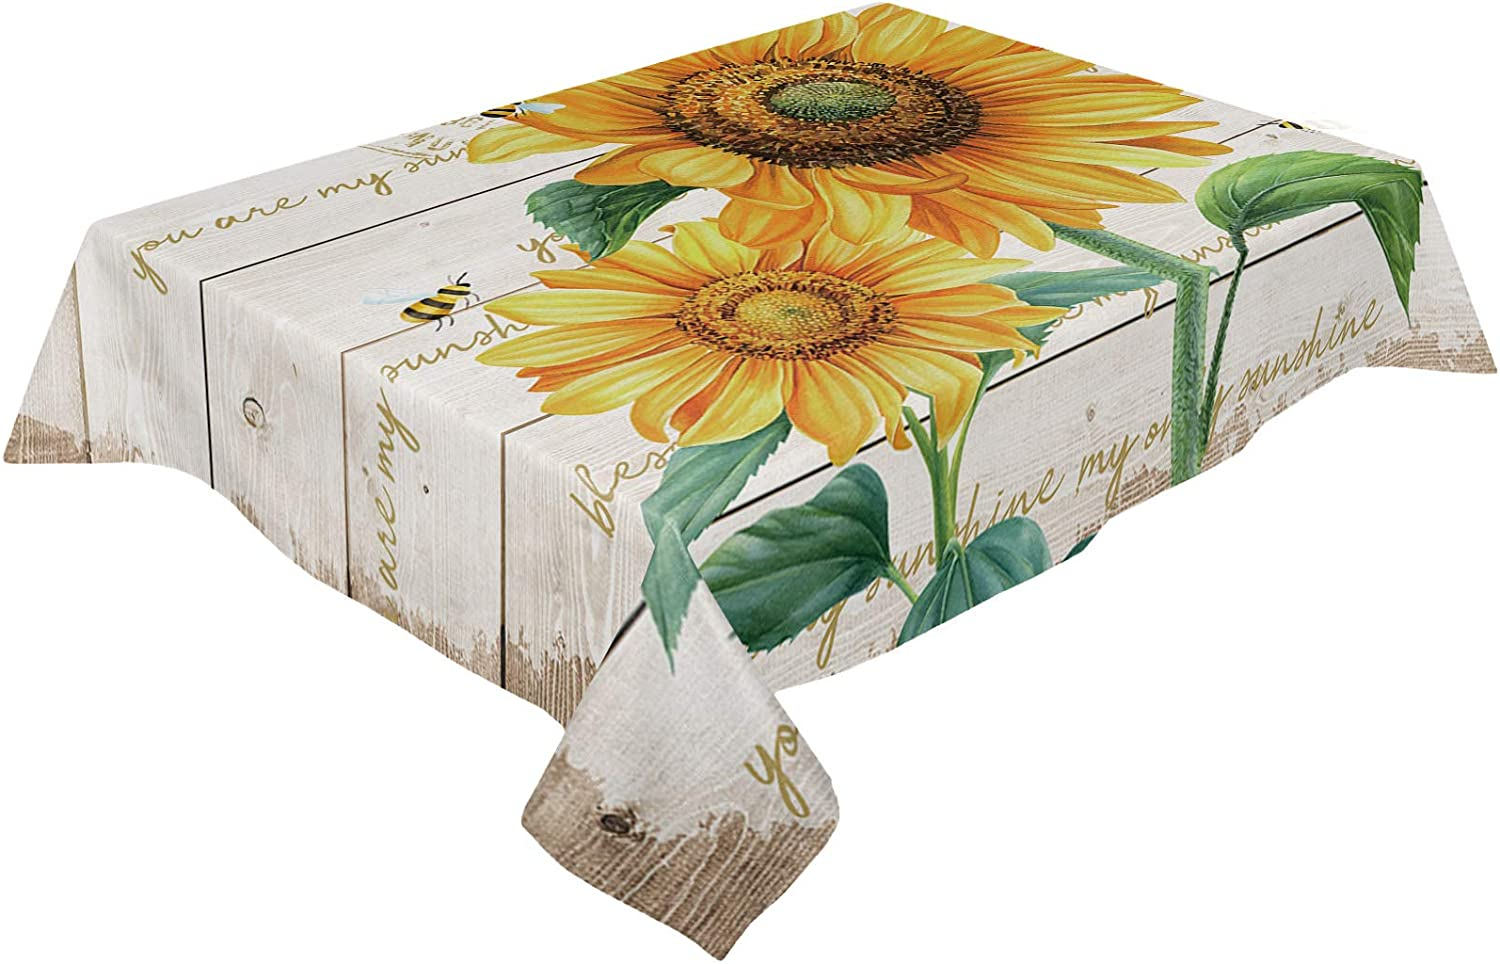 ARTSHOWING Farmhouse Cotton Linen 2021 autumn and winter new Cloth Table Waterproof Product